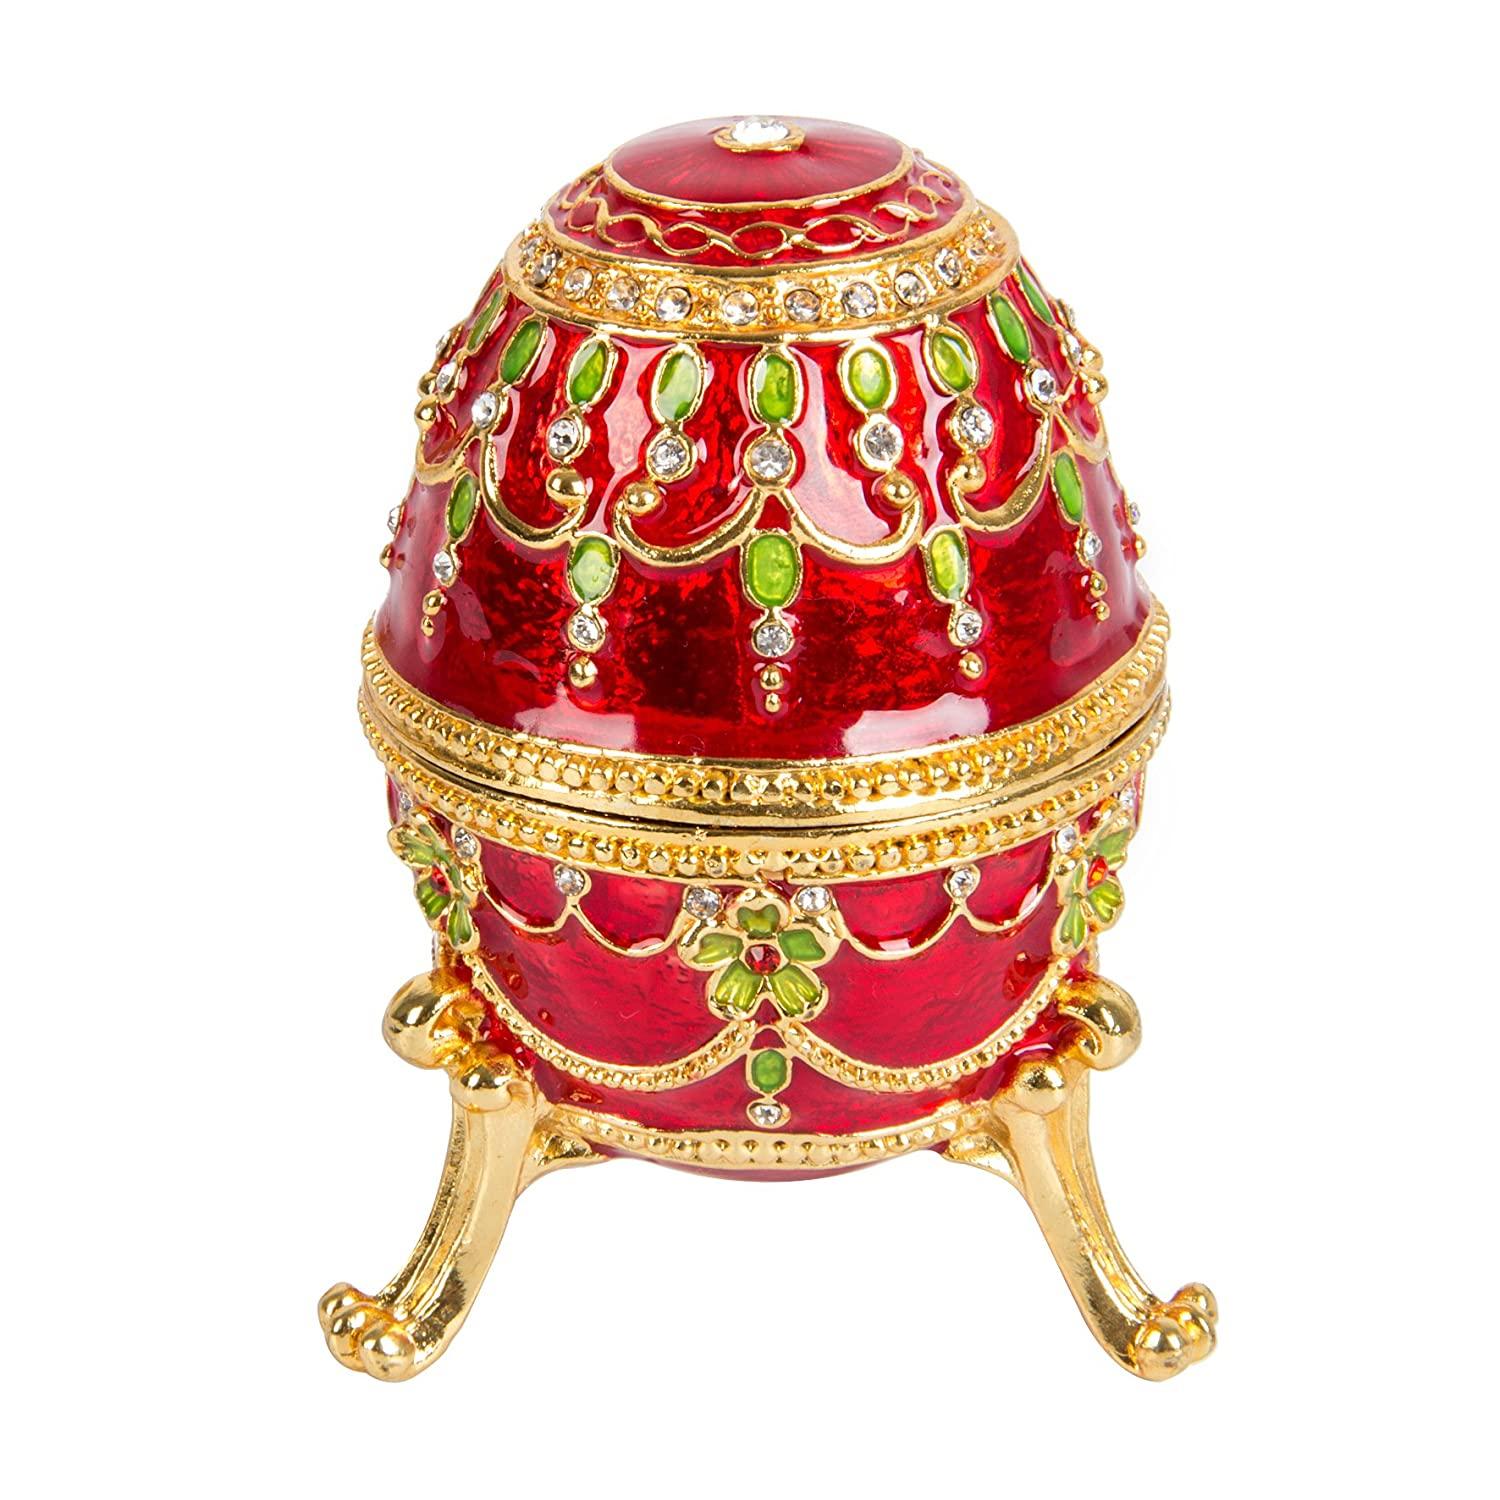 QIFU-Hand Painted Enameled Faberge Decorative Hinged Jewelry Trinket Box Unique Gift For Home Decor QIFU metalcraft